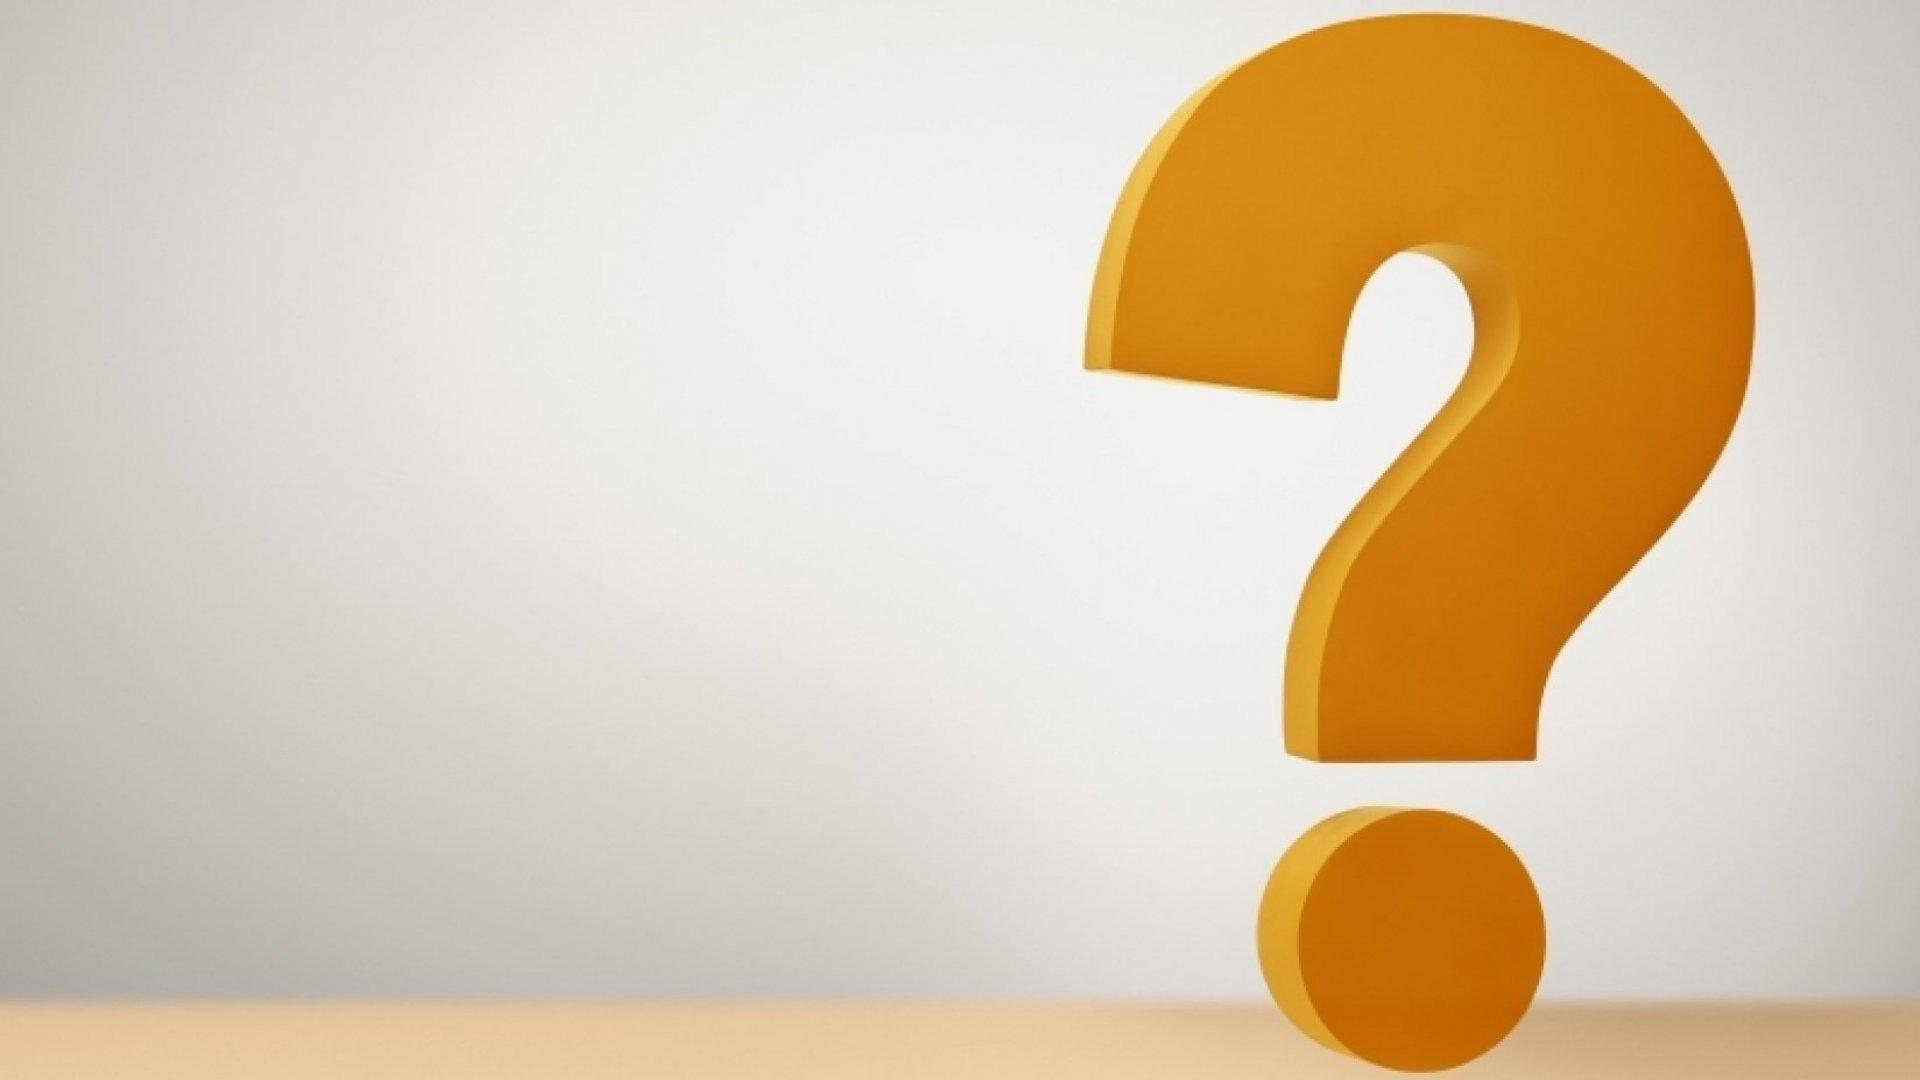 5 Fail Safe Questions for Creating Intentional Leadership